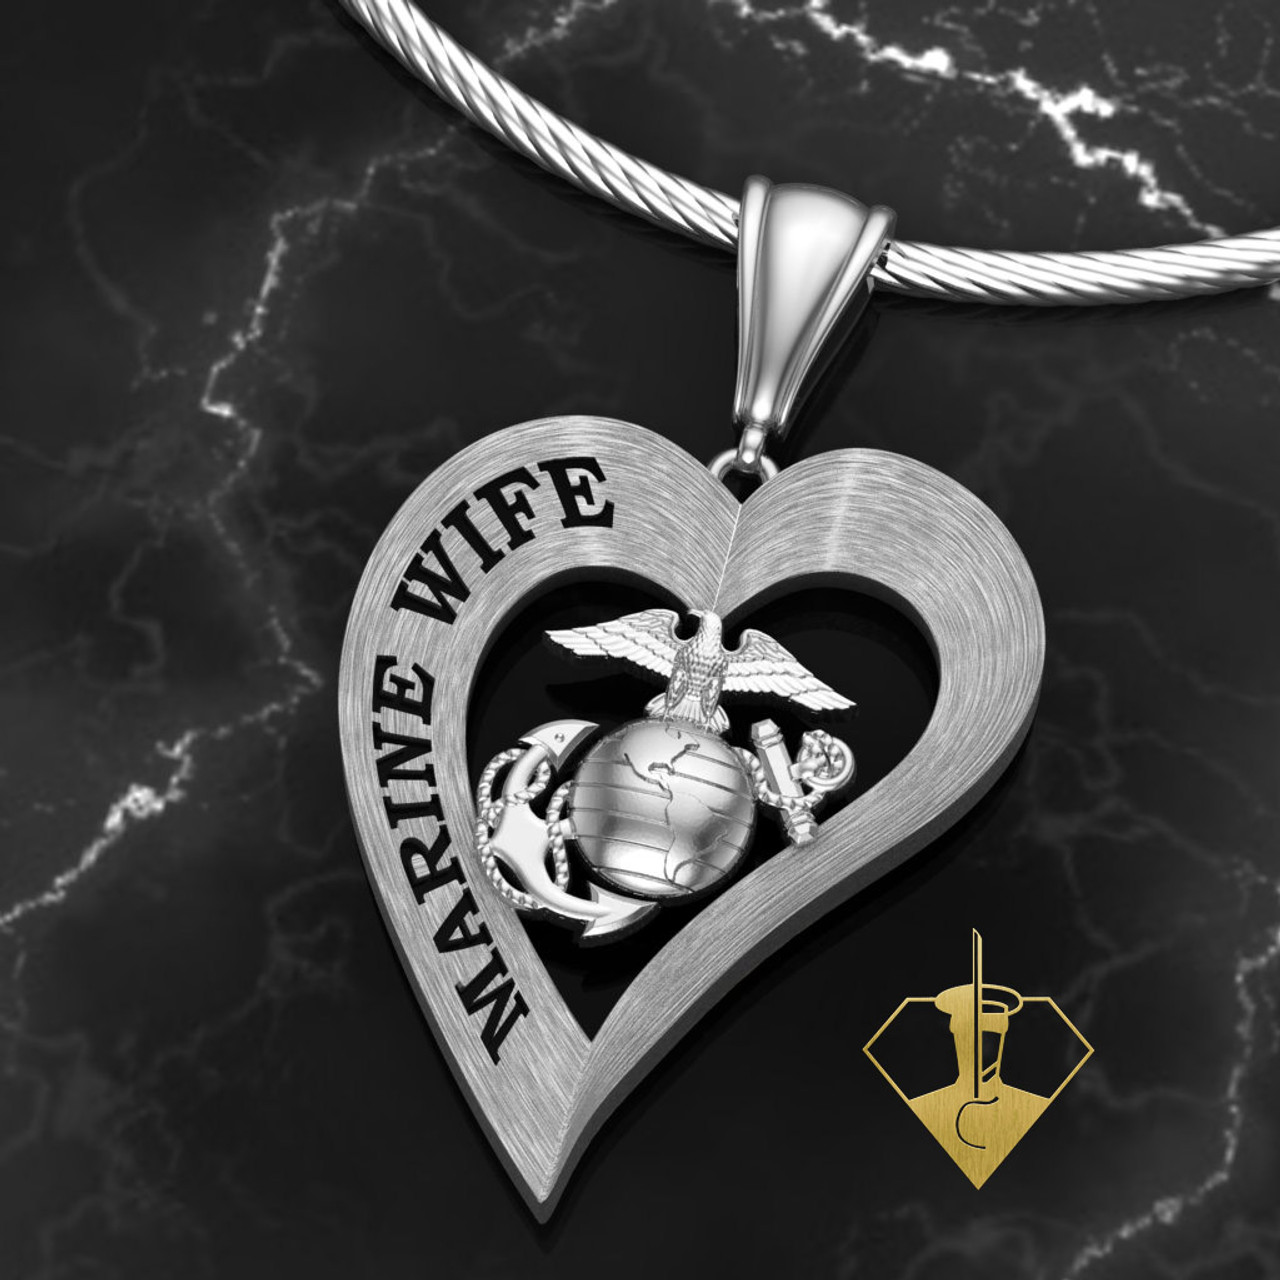 "Marine Wife Heart Diamond Etched Pendant w/18"" Sterling Silver Chain also available in 10k, 14k and 18k white or yellow gold ""Made by Marines for Marines""    100% Satisfaction Guaranteed"